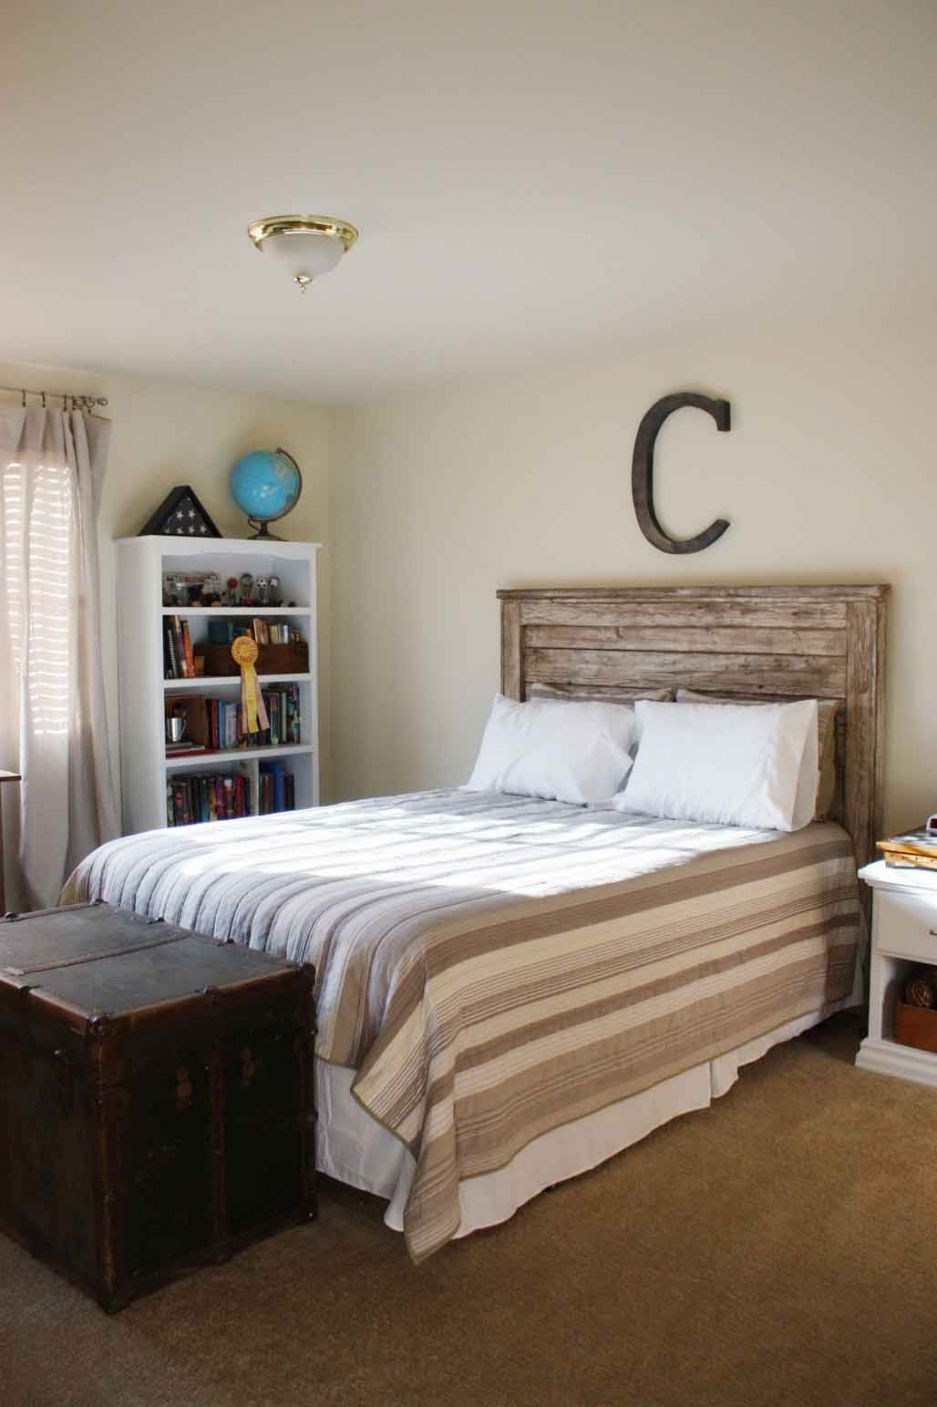 Furniture, 29 Photos Of Modern And Cool Bed Headboards Ideas: Wood Of The Best Rustic Headboards In Minimalist Bedroom Interior